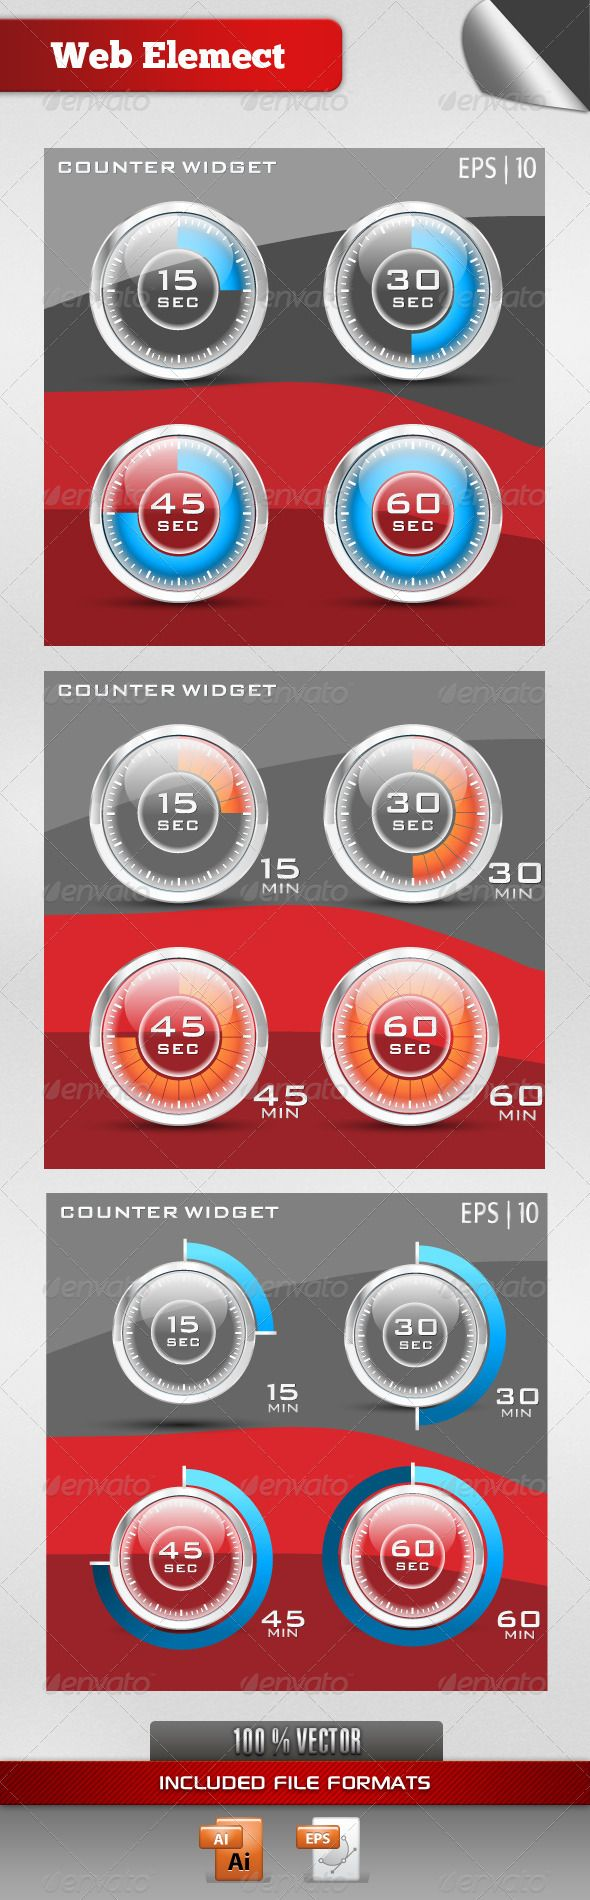 Counter Widget by vectorworks Three sets of Glossy Transparent seconds and minute counter widget